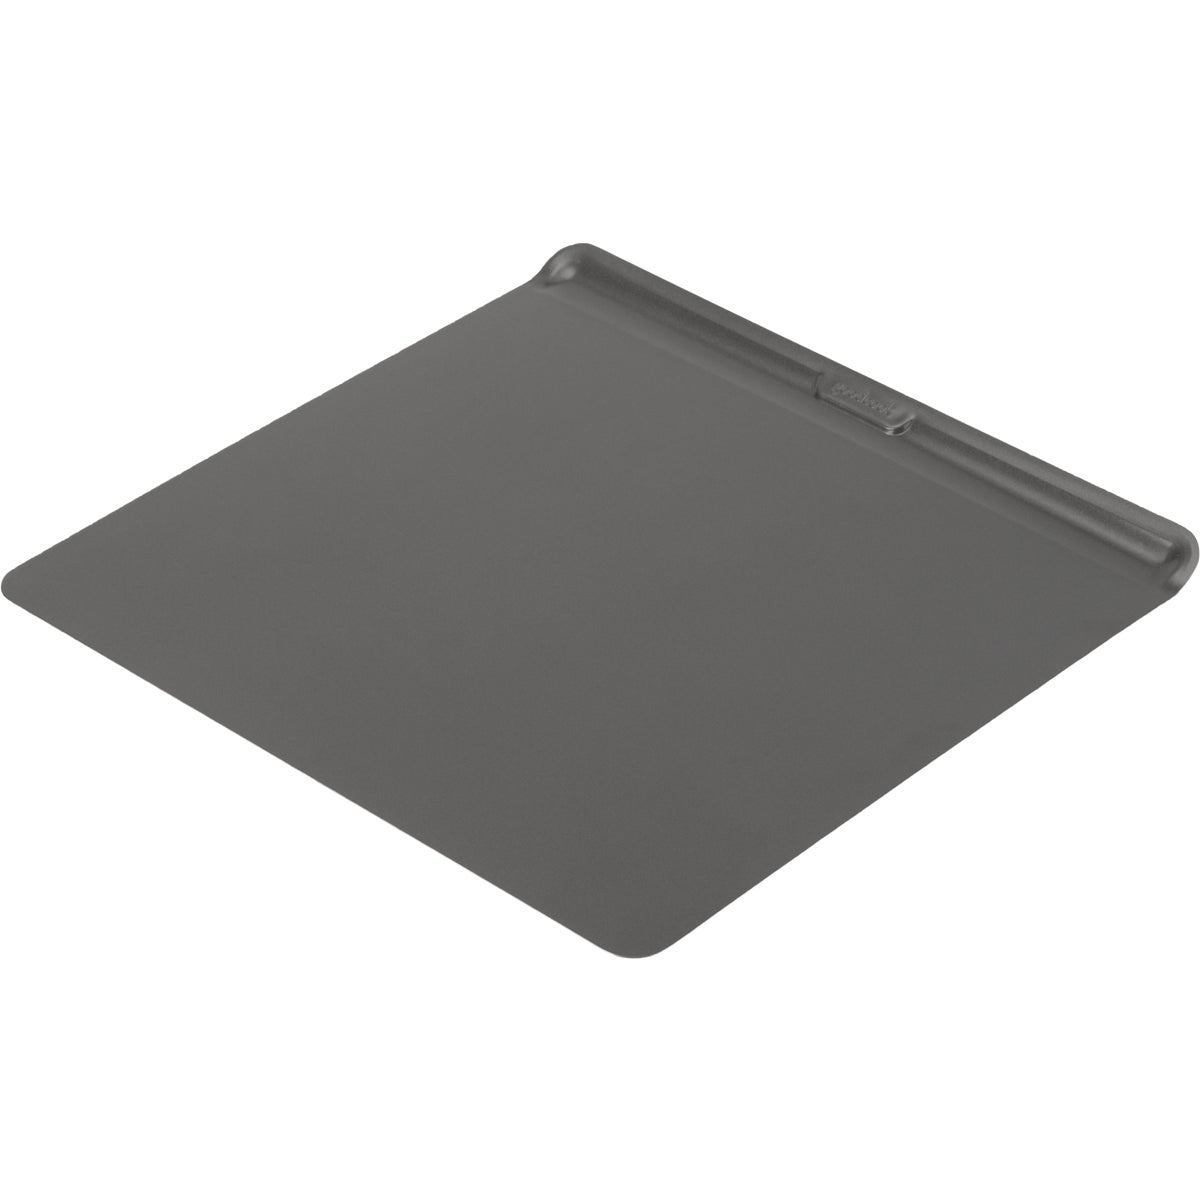 14X16 BAKING SHEET - 84802 by Bradshaw